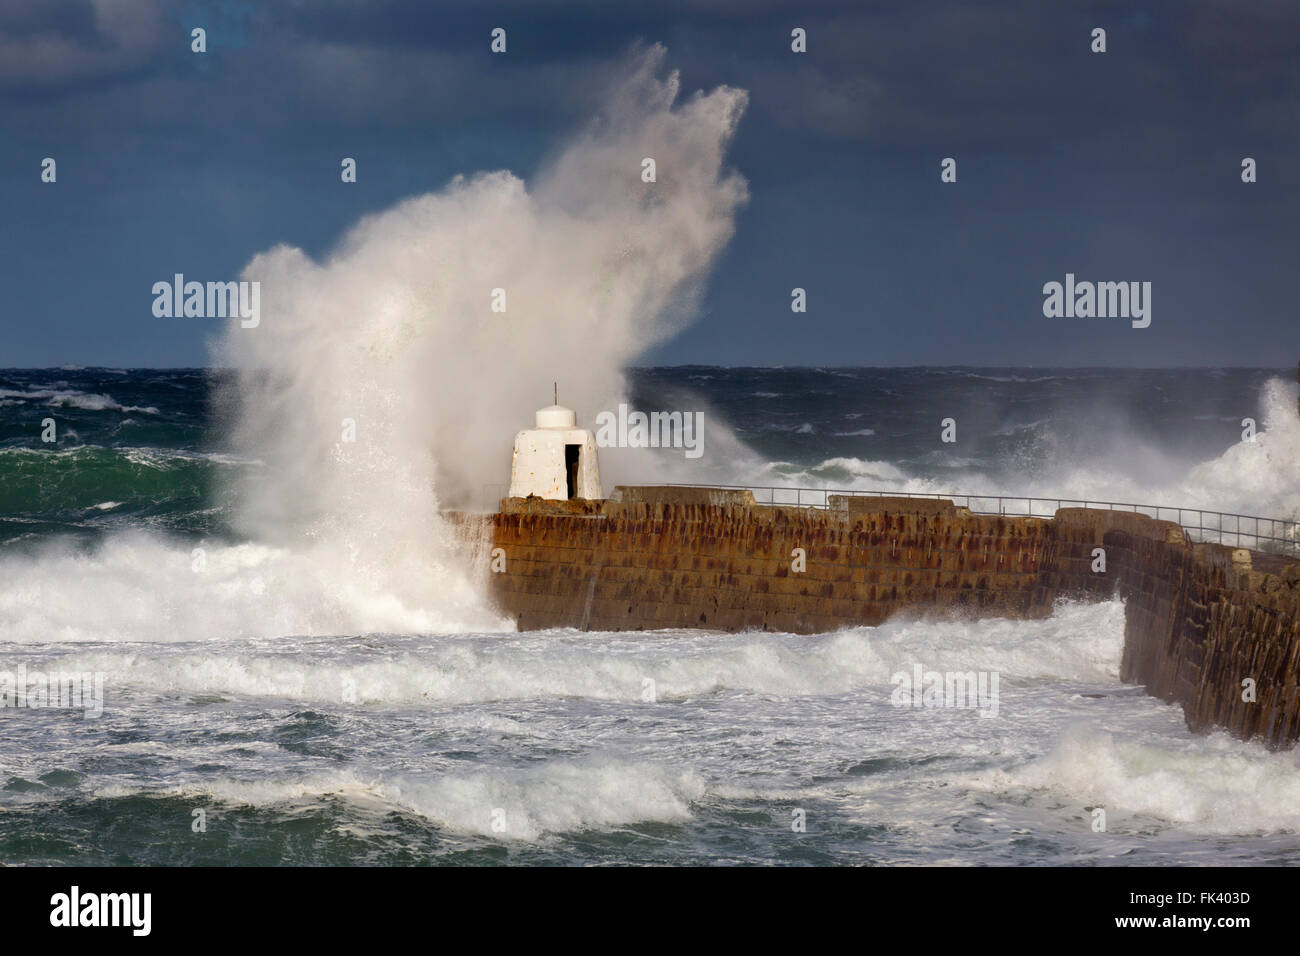 Portreath breaking Wave ; Pier, Cornwall, UK Photo Stock